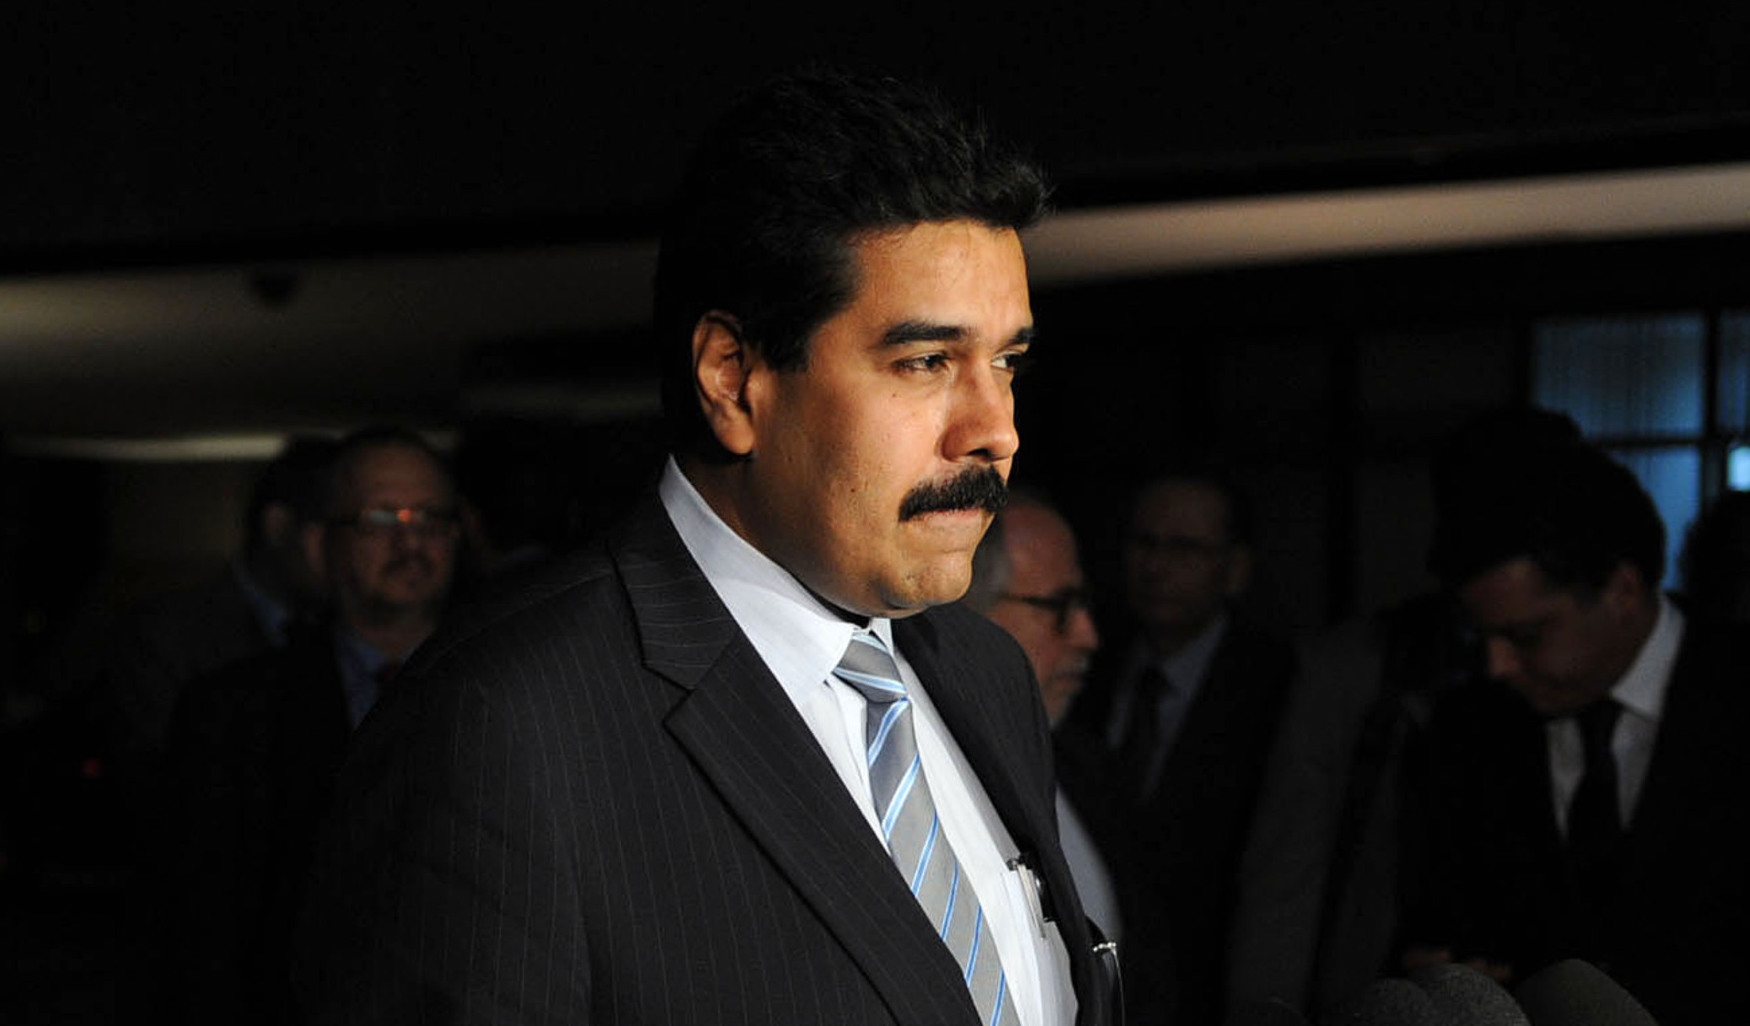 Dictator Maduro faces coronavirus and US drug charges after he calls for Venezuela population boom